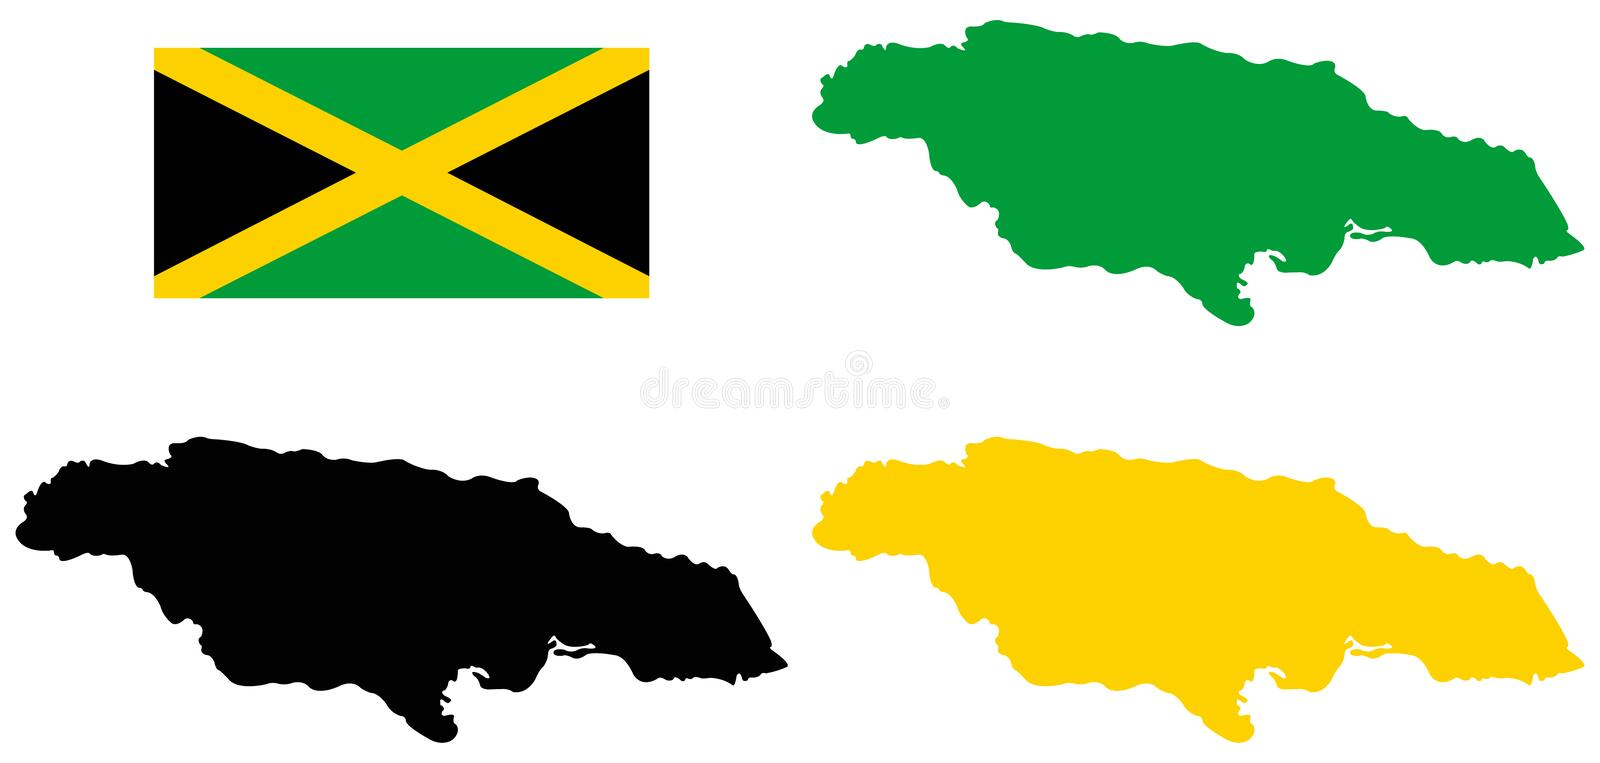 Jamaica flag and map - island country situated in the Caribbean Sea stock illustration